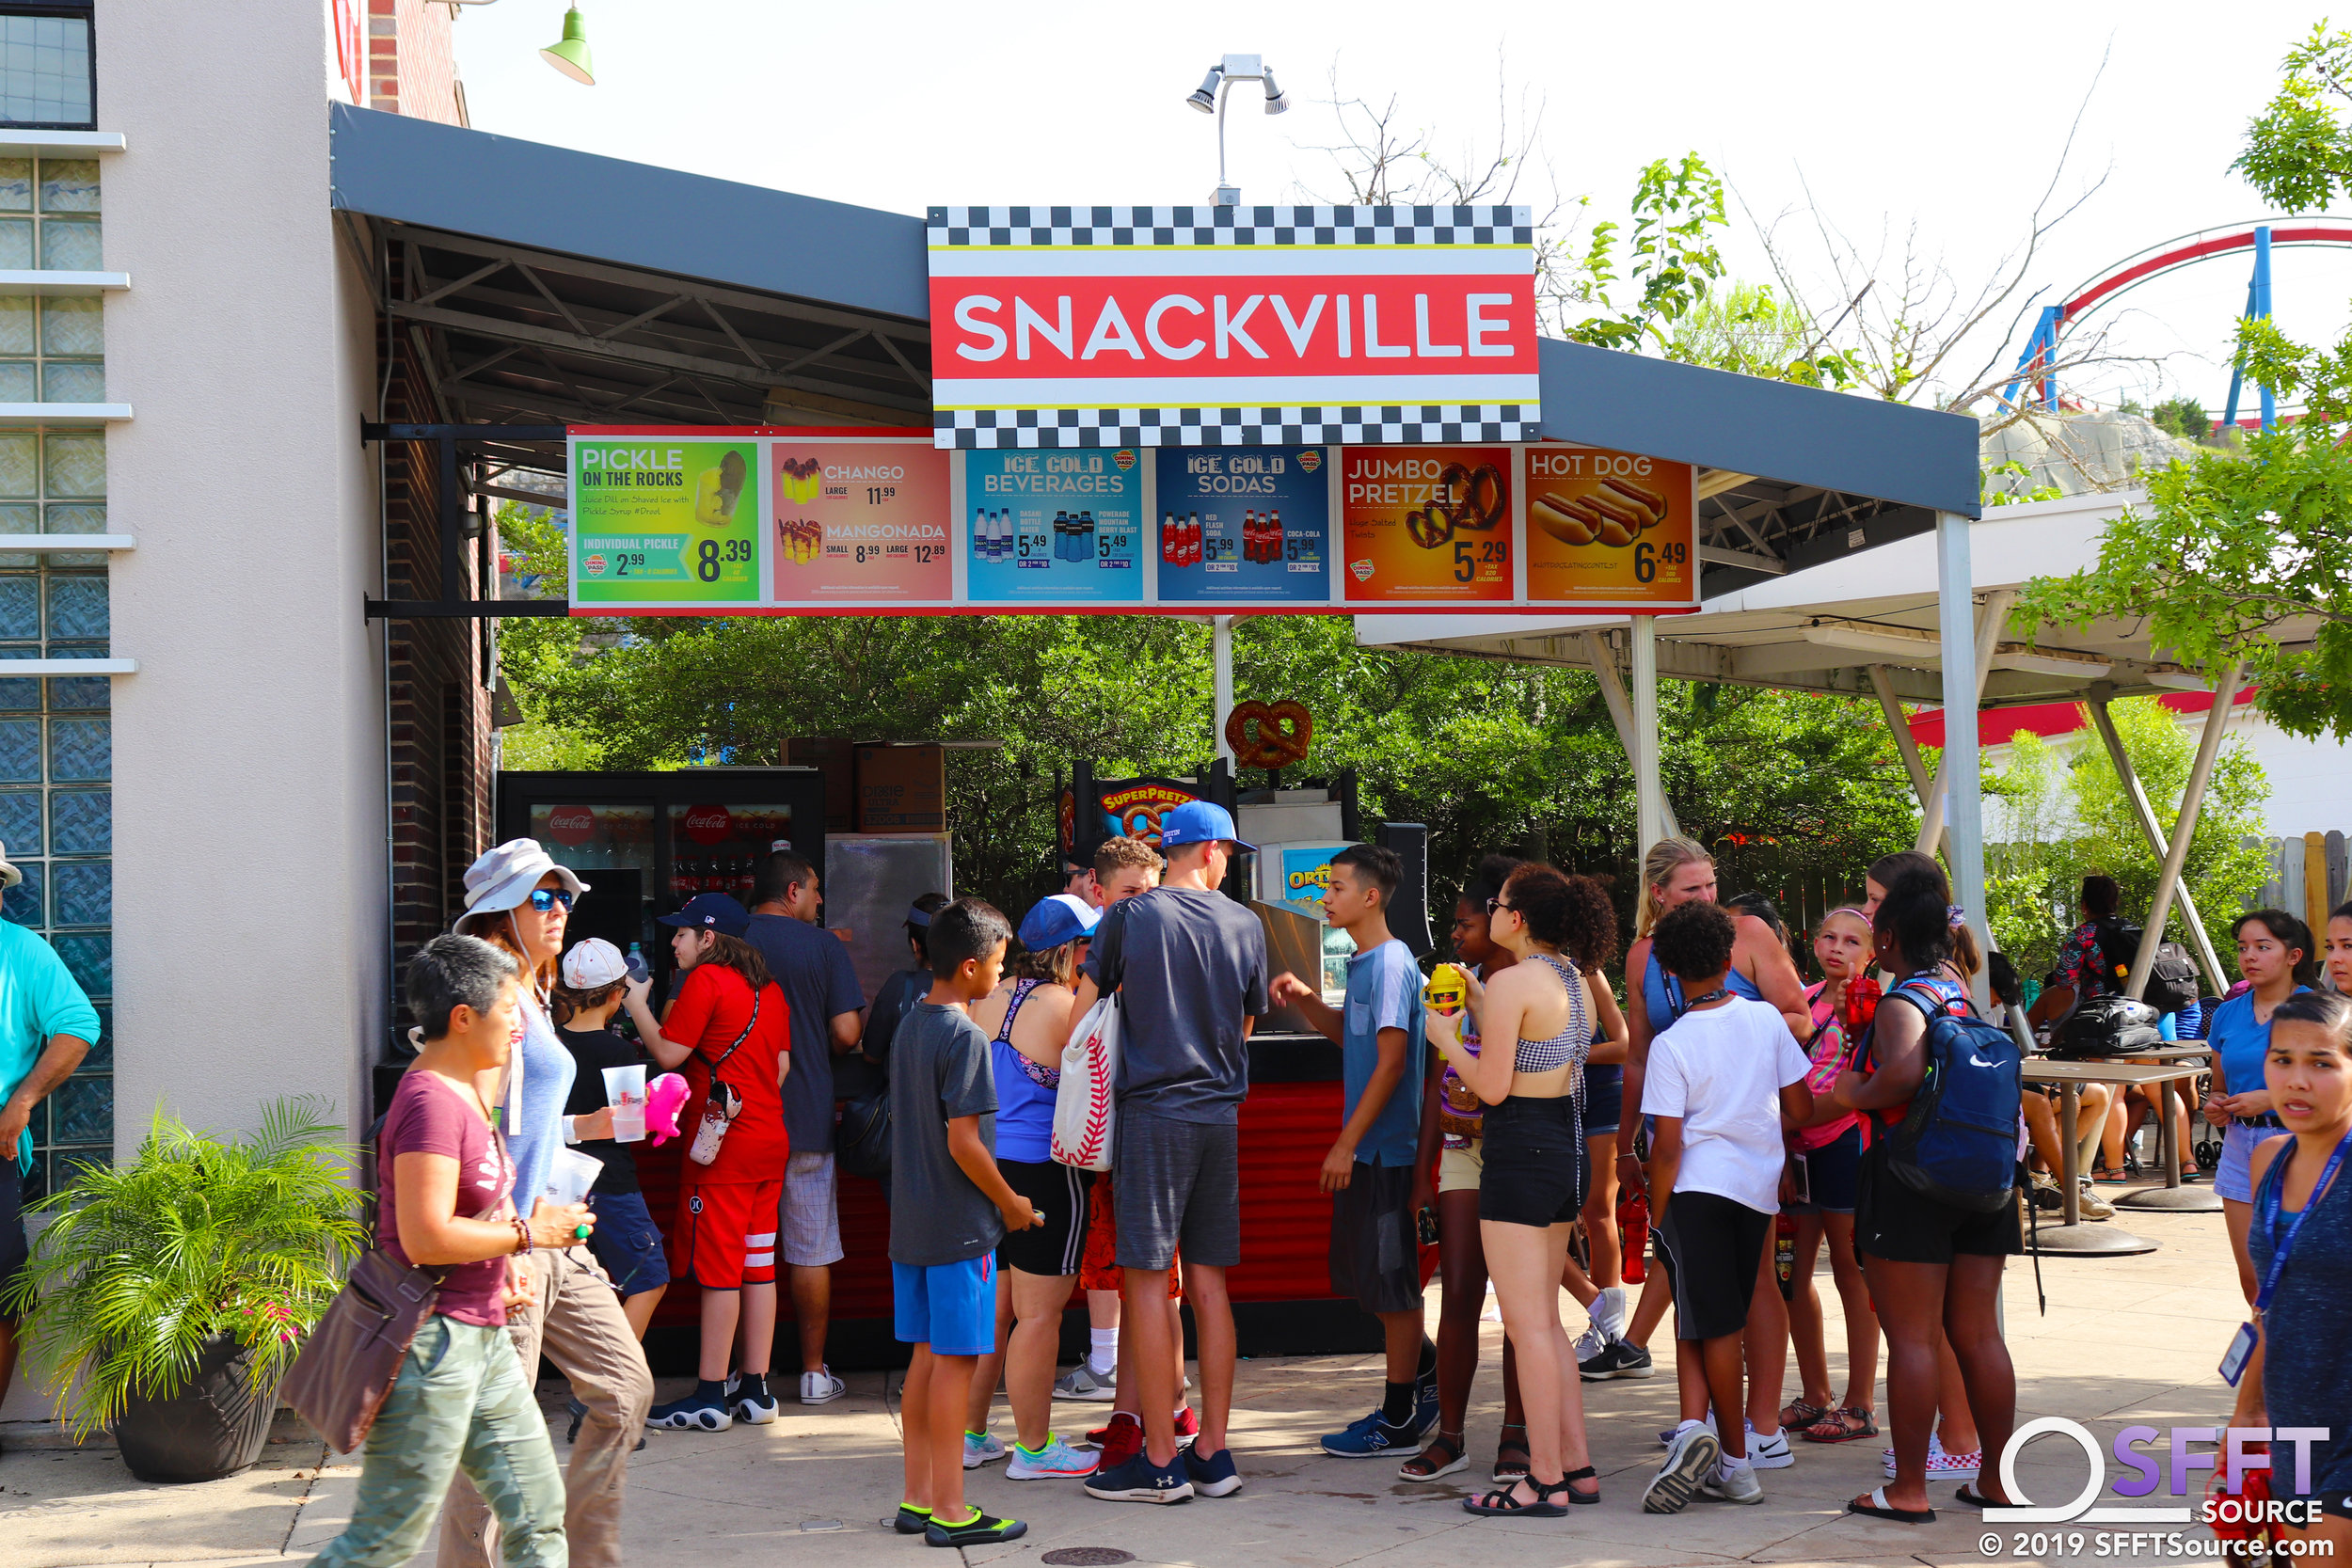 Snackville features a number of snack and drink options.